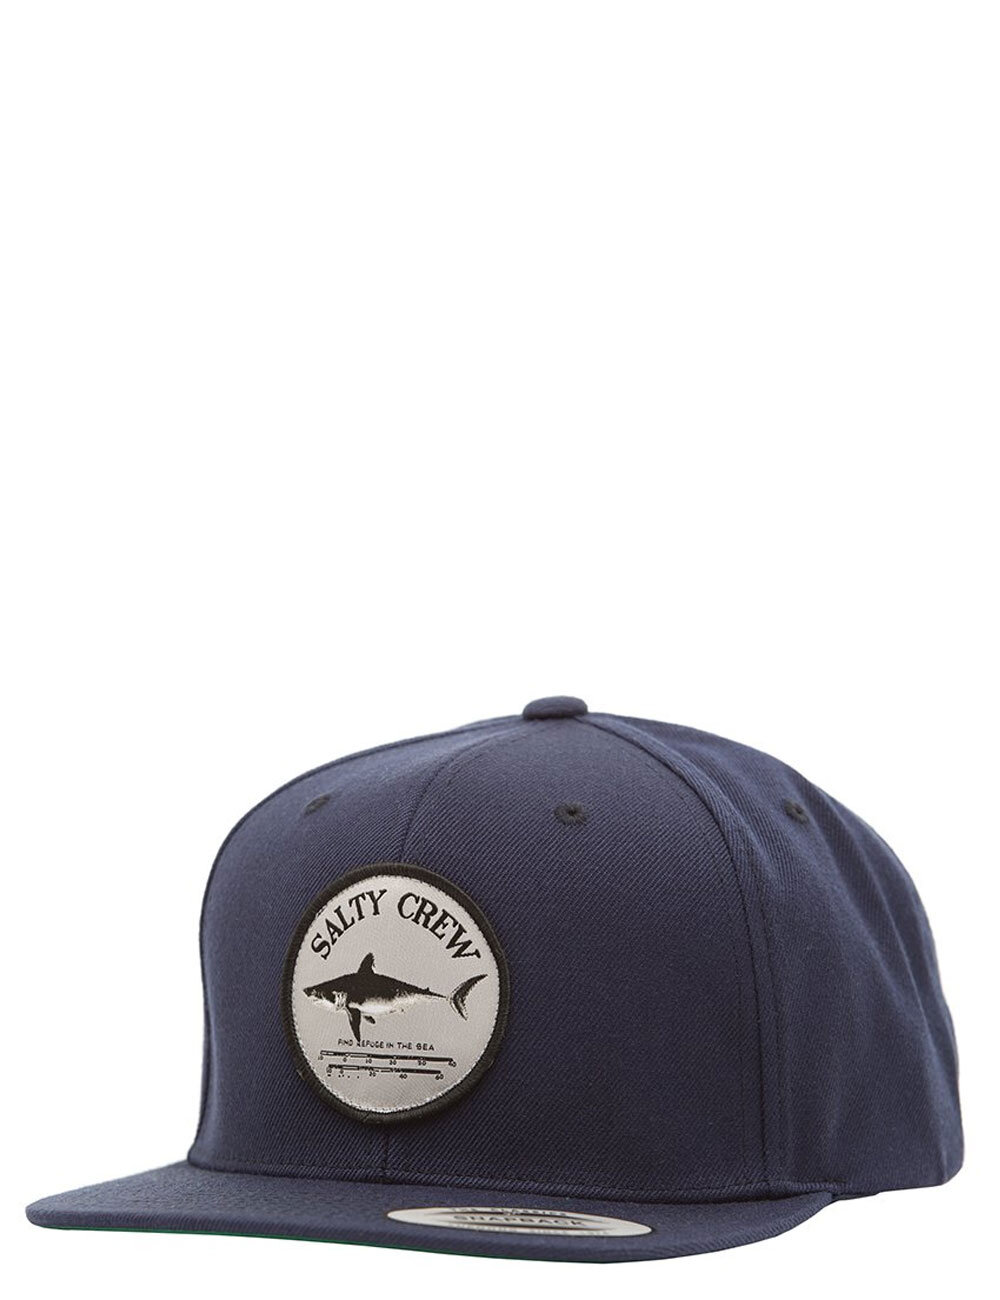 new arrival 2f4b8 940bb BRUCE 6 PANEL CAP - Men s Accessories   Surf   Skate Brands   Streetwear - SALTY  CREW S18